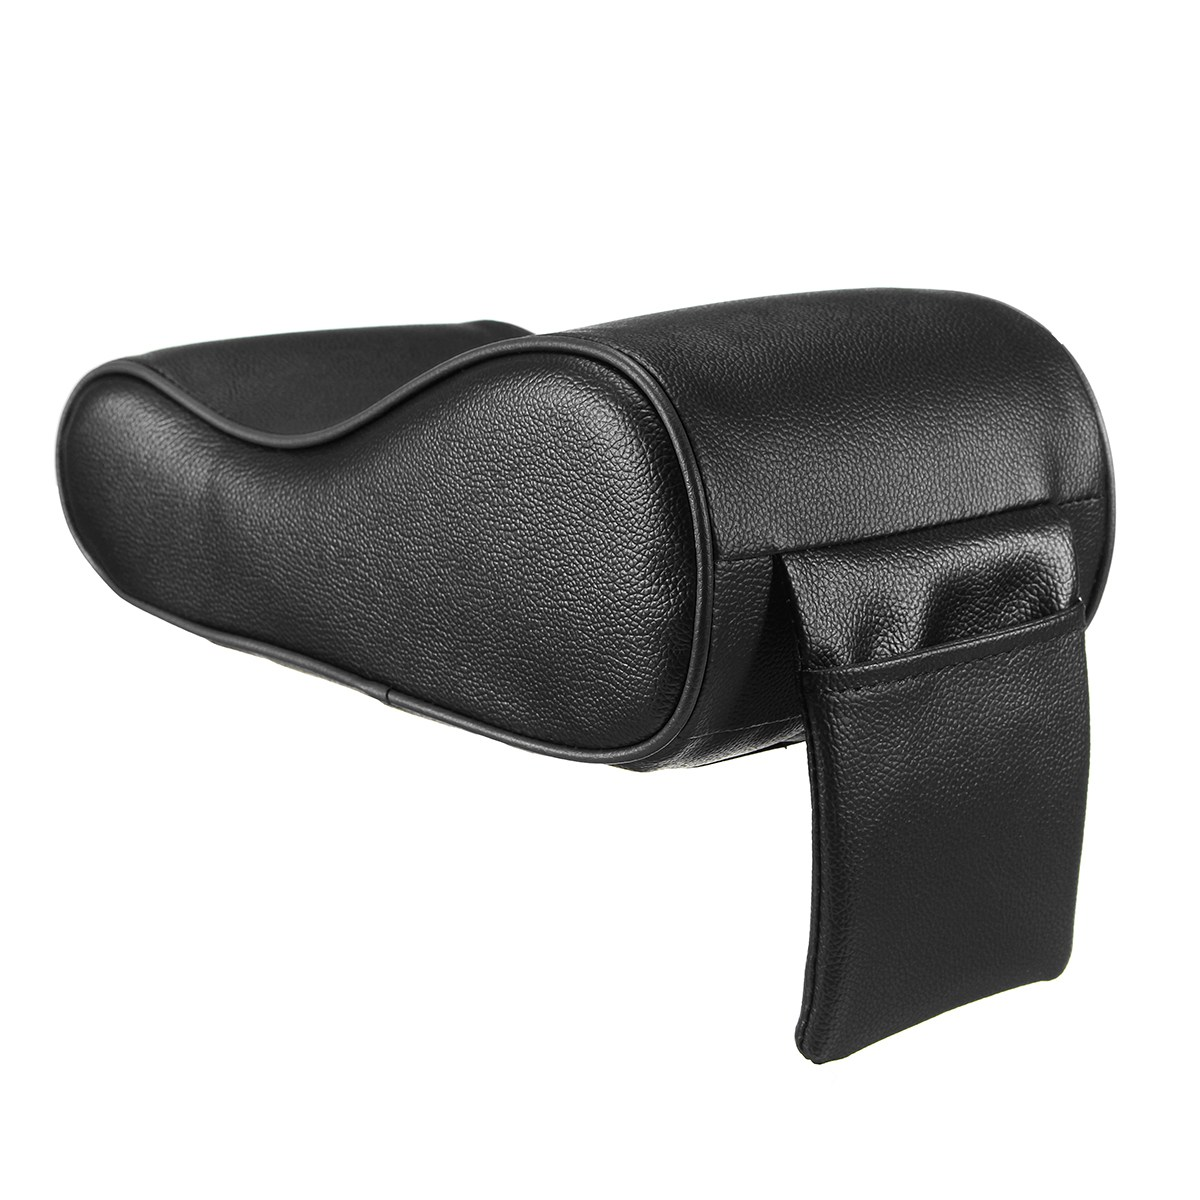 1x Leather Car Armrest Cushion Pillow Console Box Riser Pad Cover Phone Storage